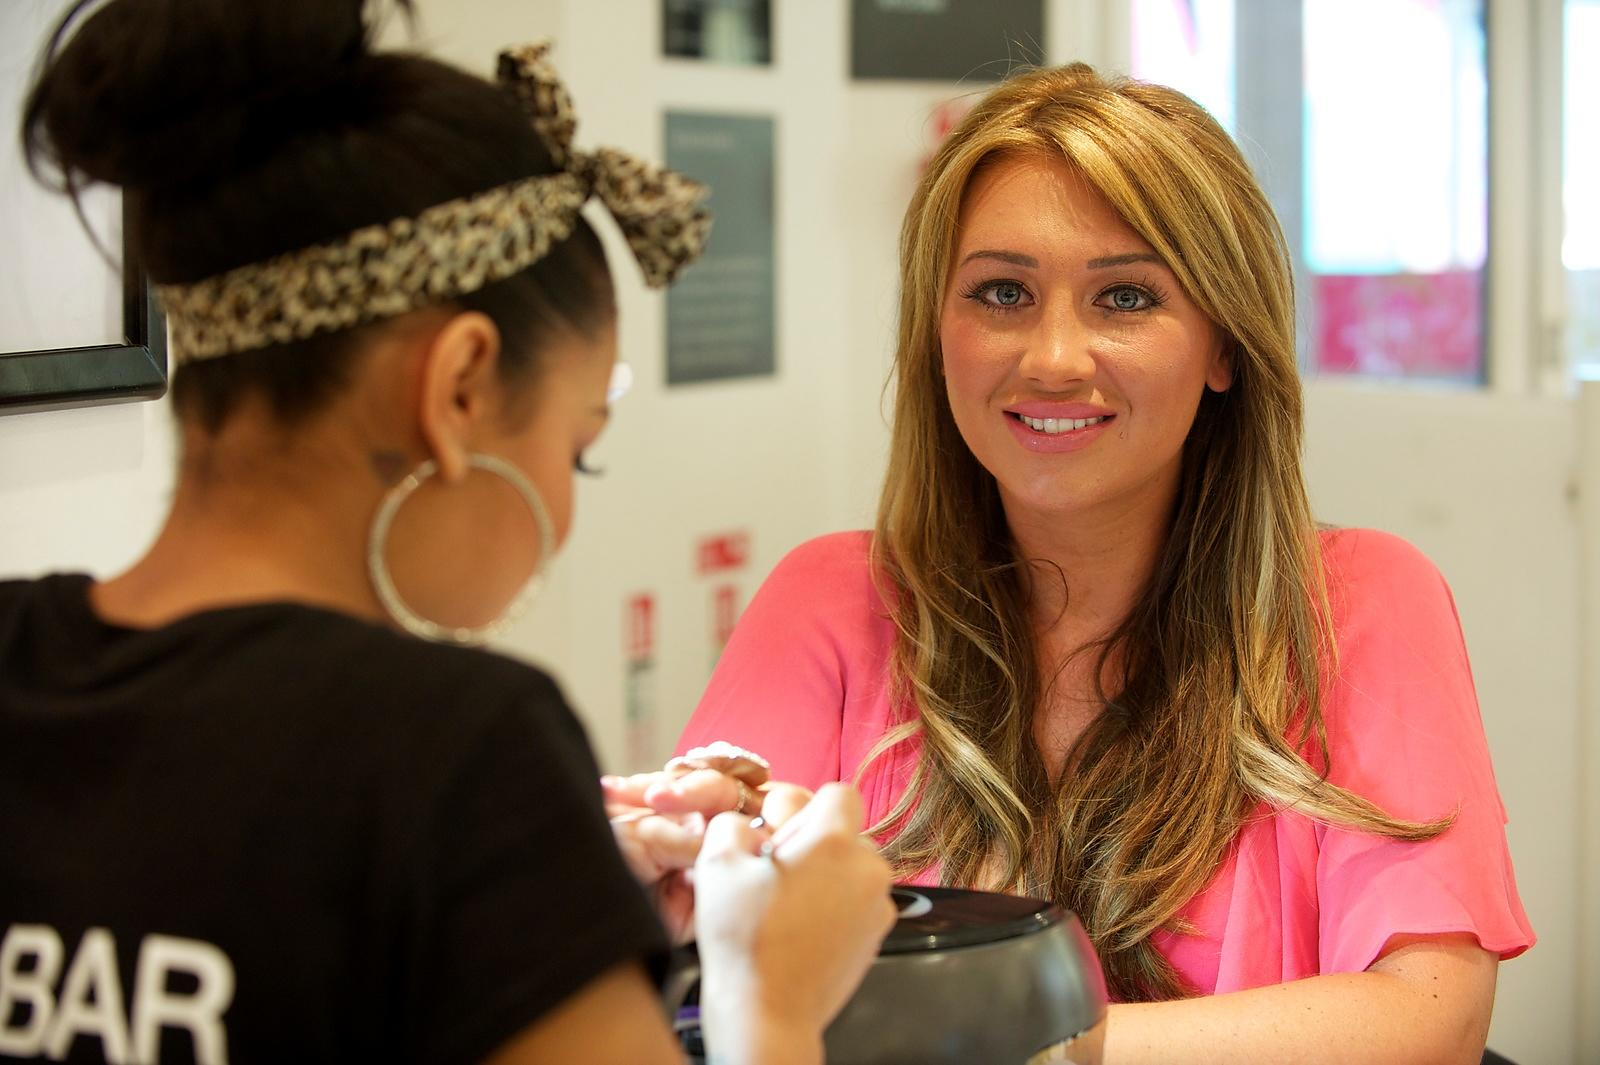 Lauren Goodger (star of The Only Way Is Essex) at the offical opening of the Regis Hair and Beauty nail bar at Debenhams in R...